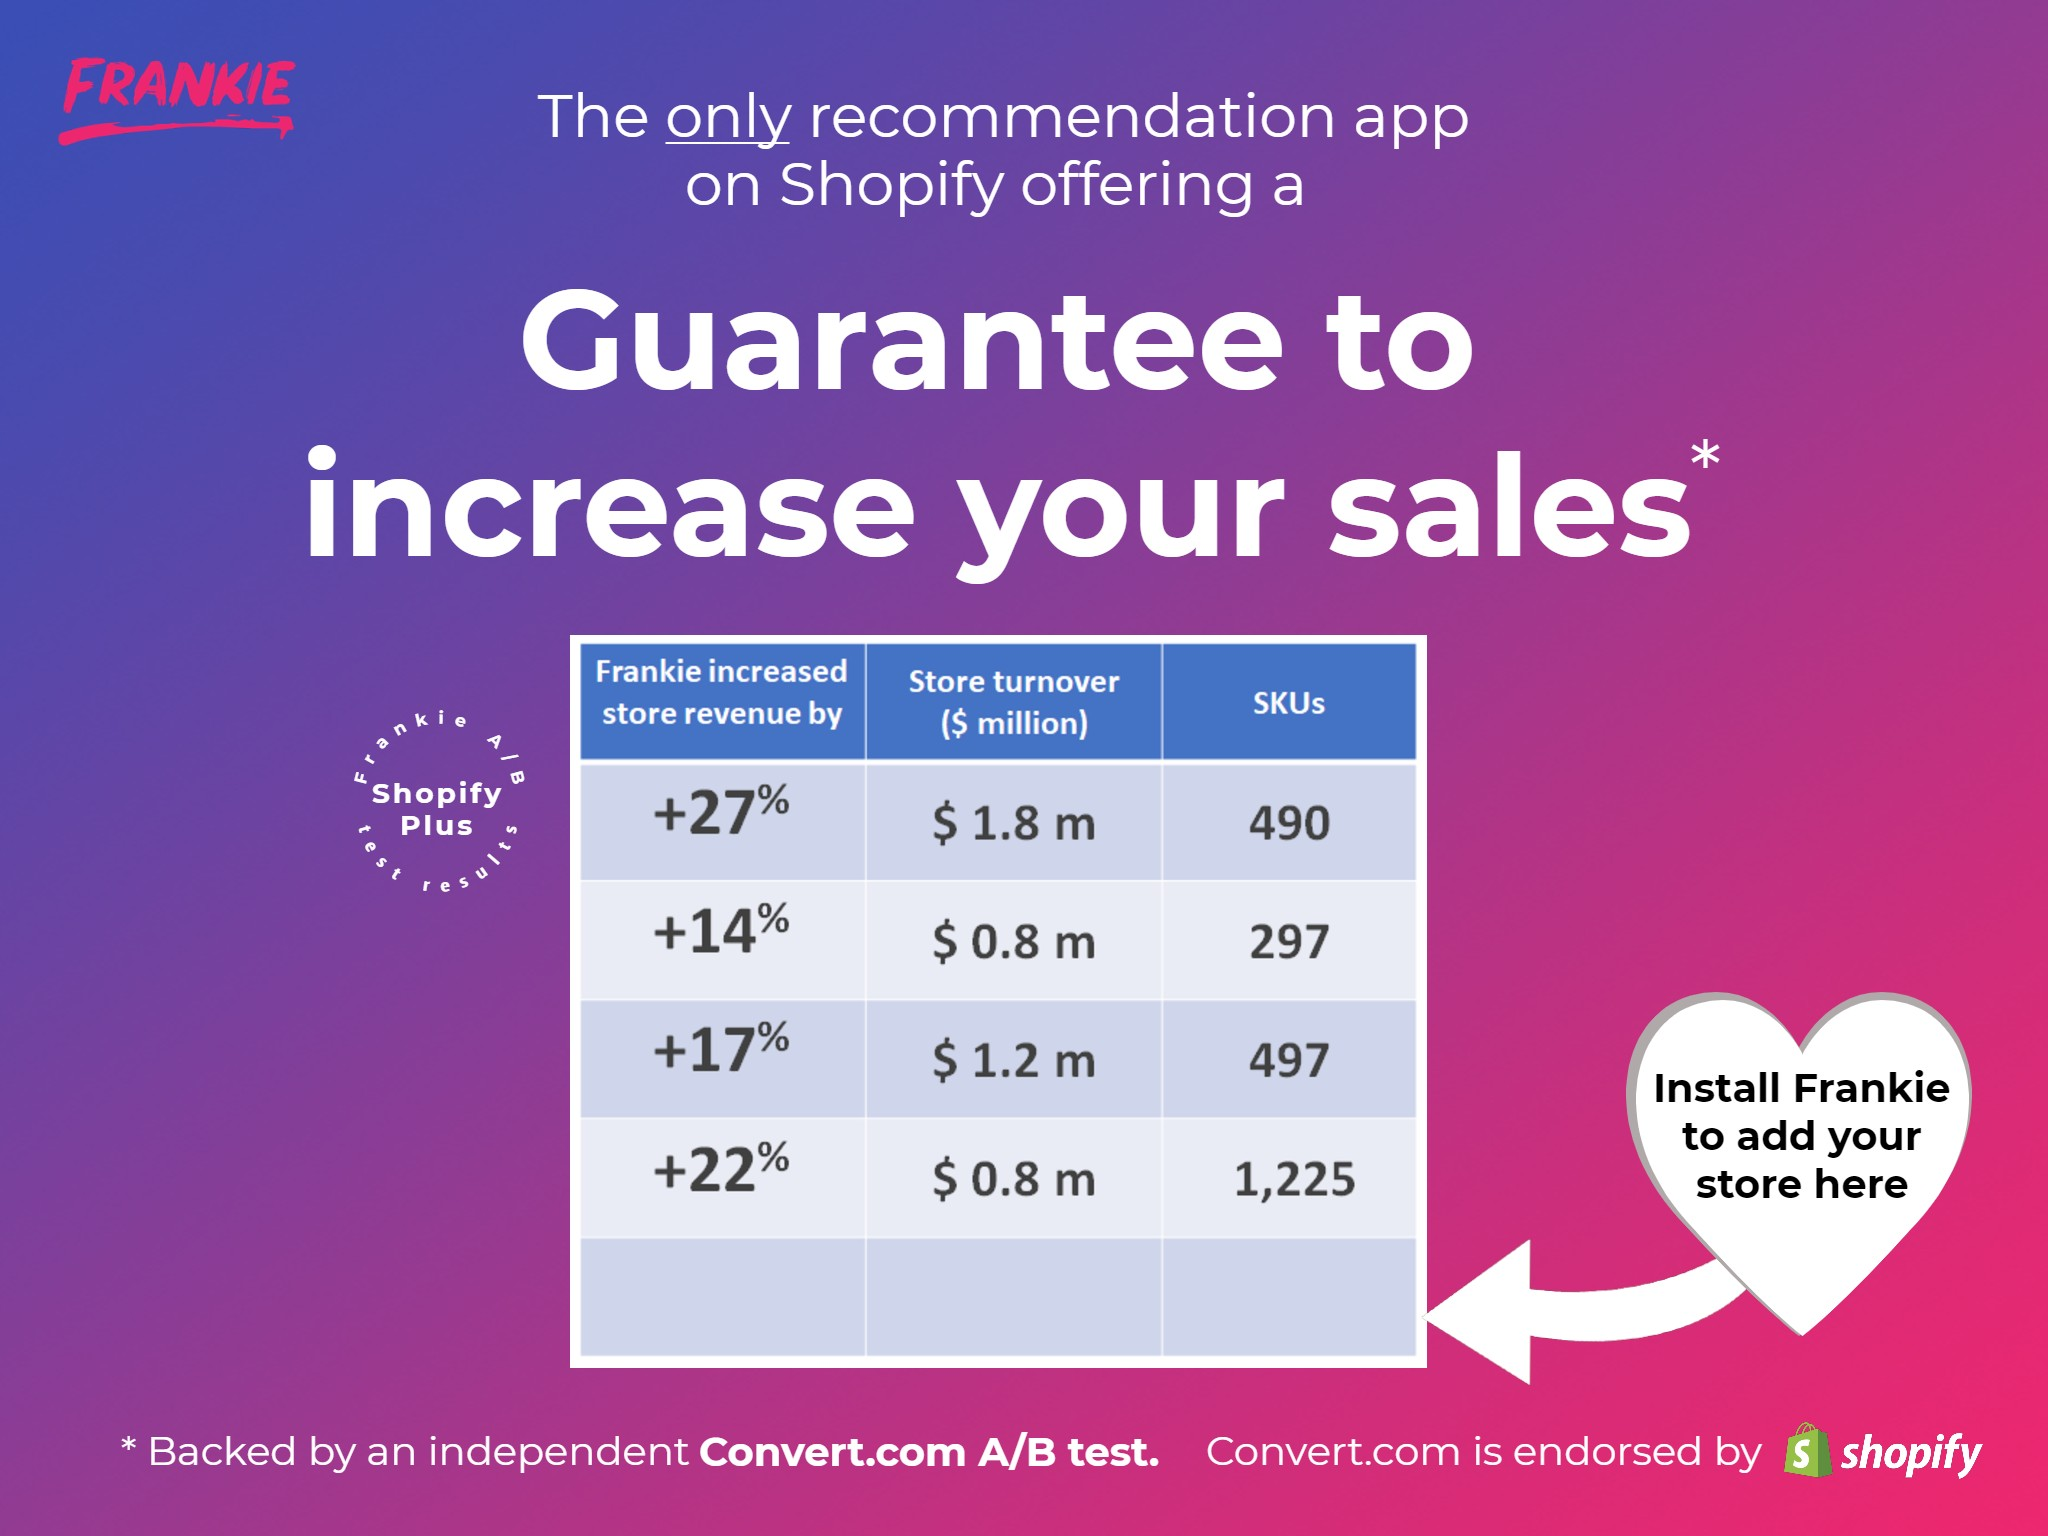 AI recommendations increase sales verified independent AB test